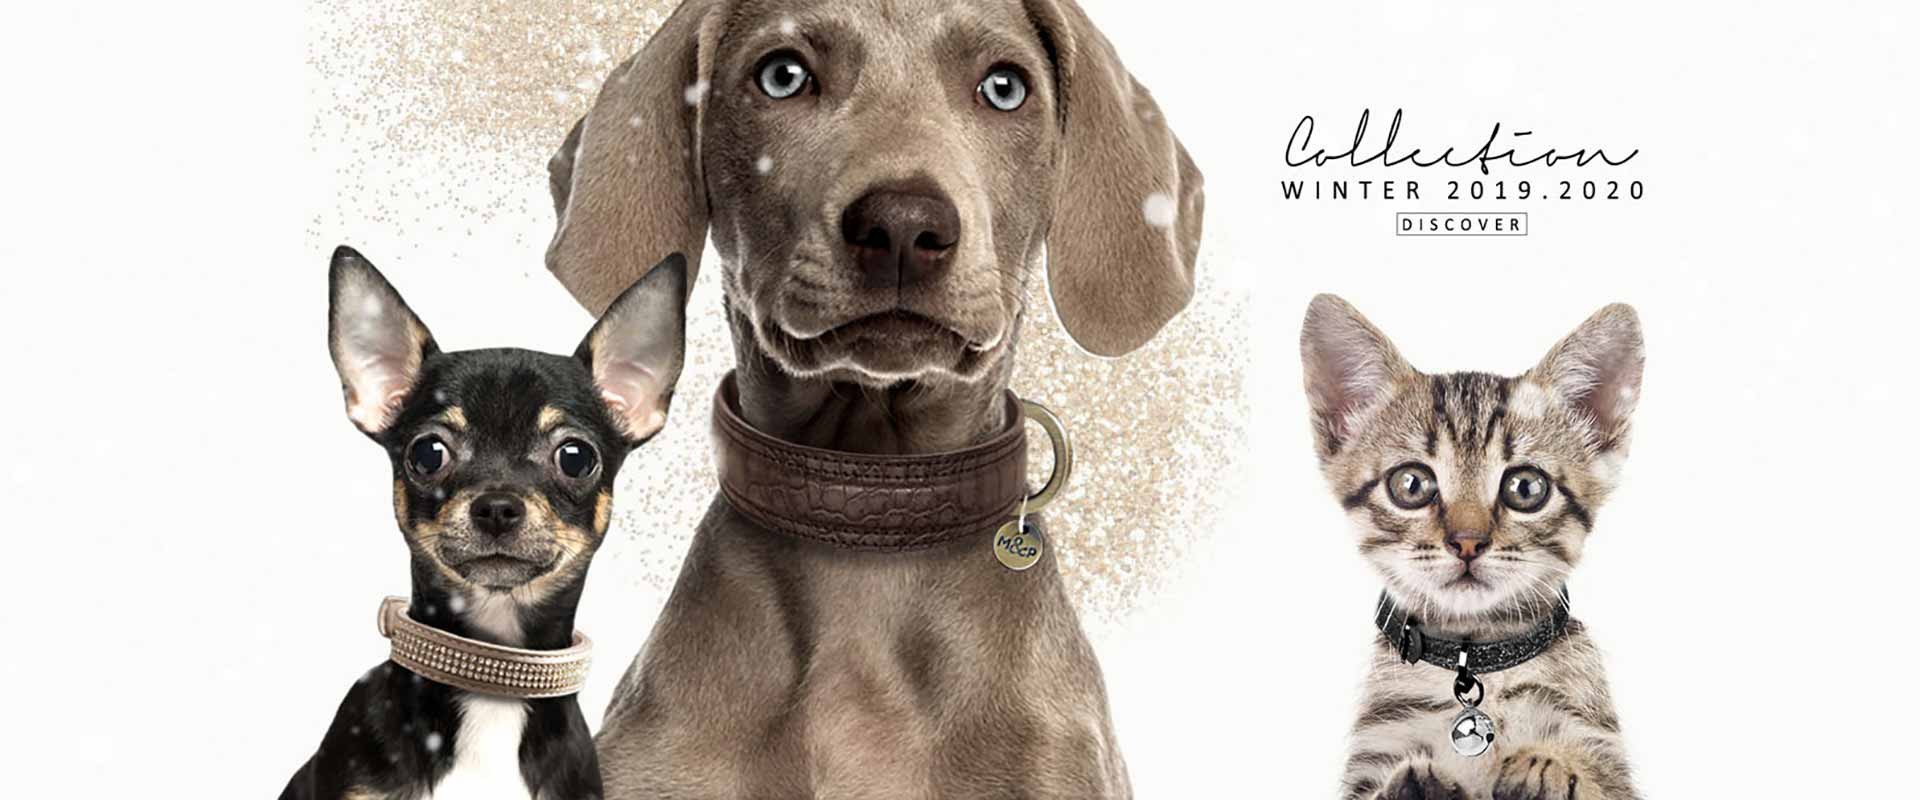 Milk & Pepper, Fashion And Accessories For Dogs & Cats -  Accessories Winter 2019